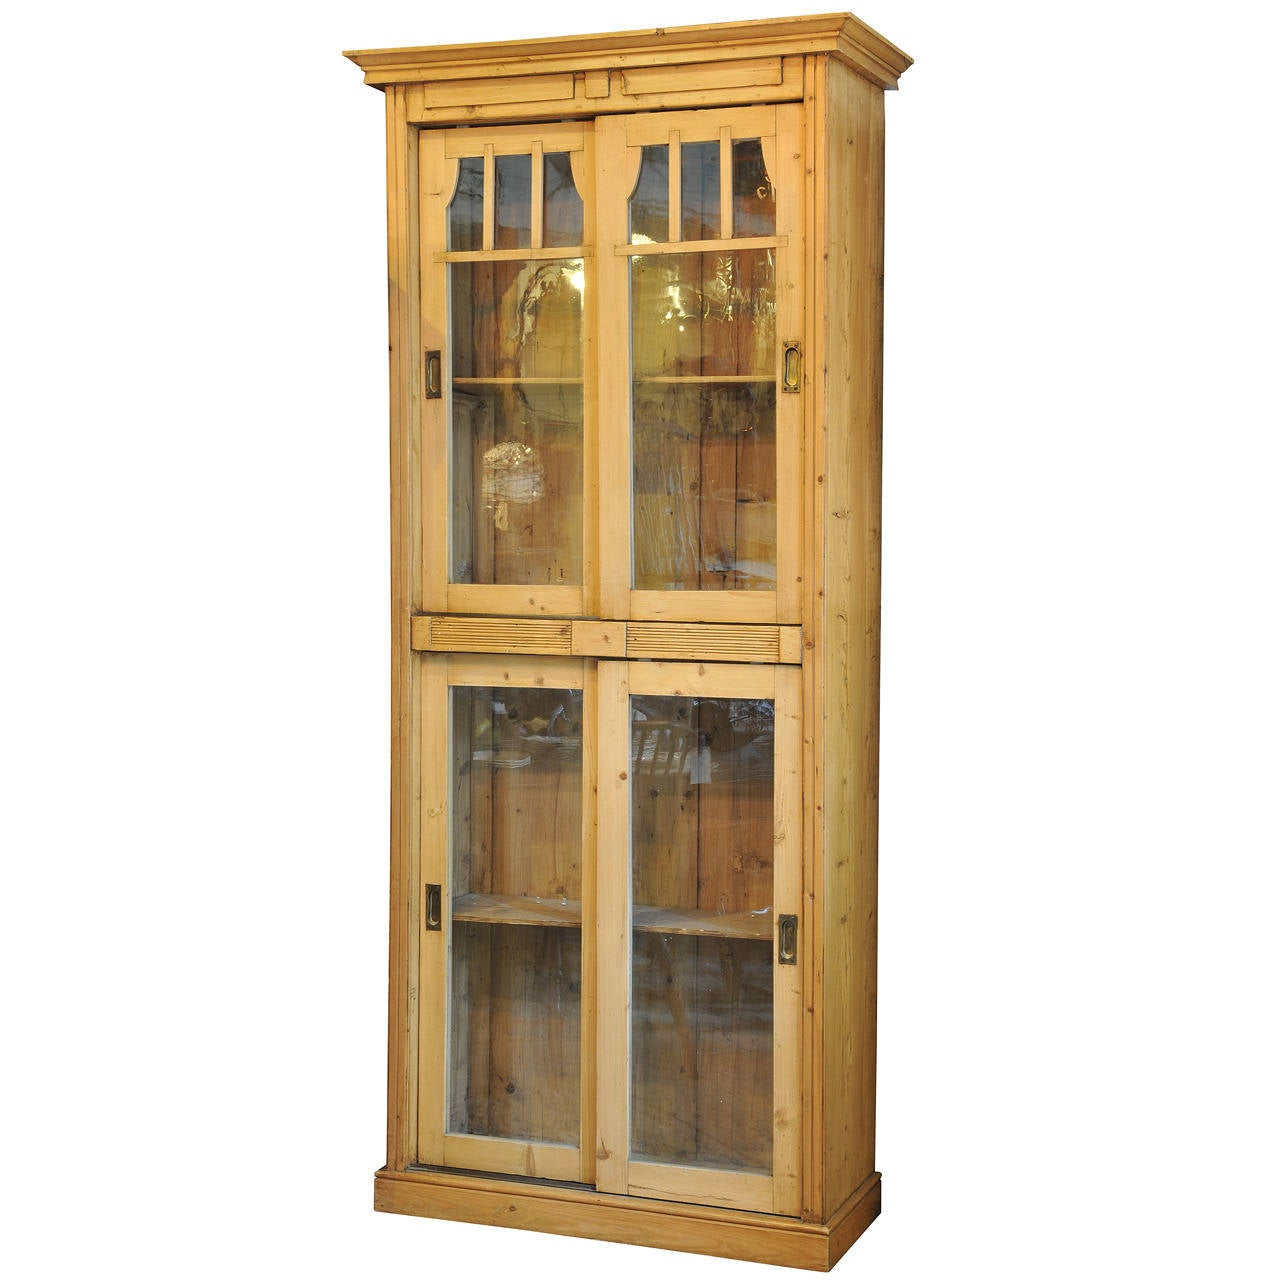 Pantry Cabinet Pine Pantry Cabinet With Tall Antique Pine Pantry Cupboard For Sale At Stdibs